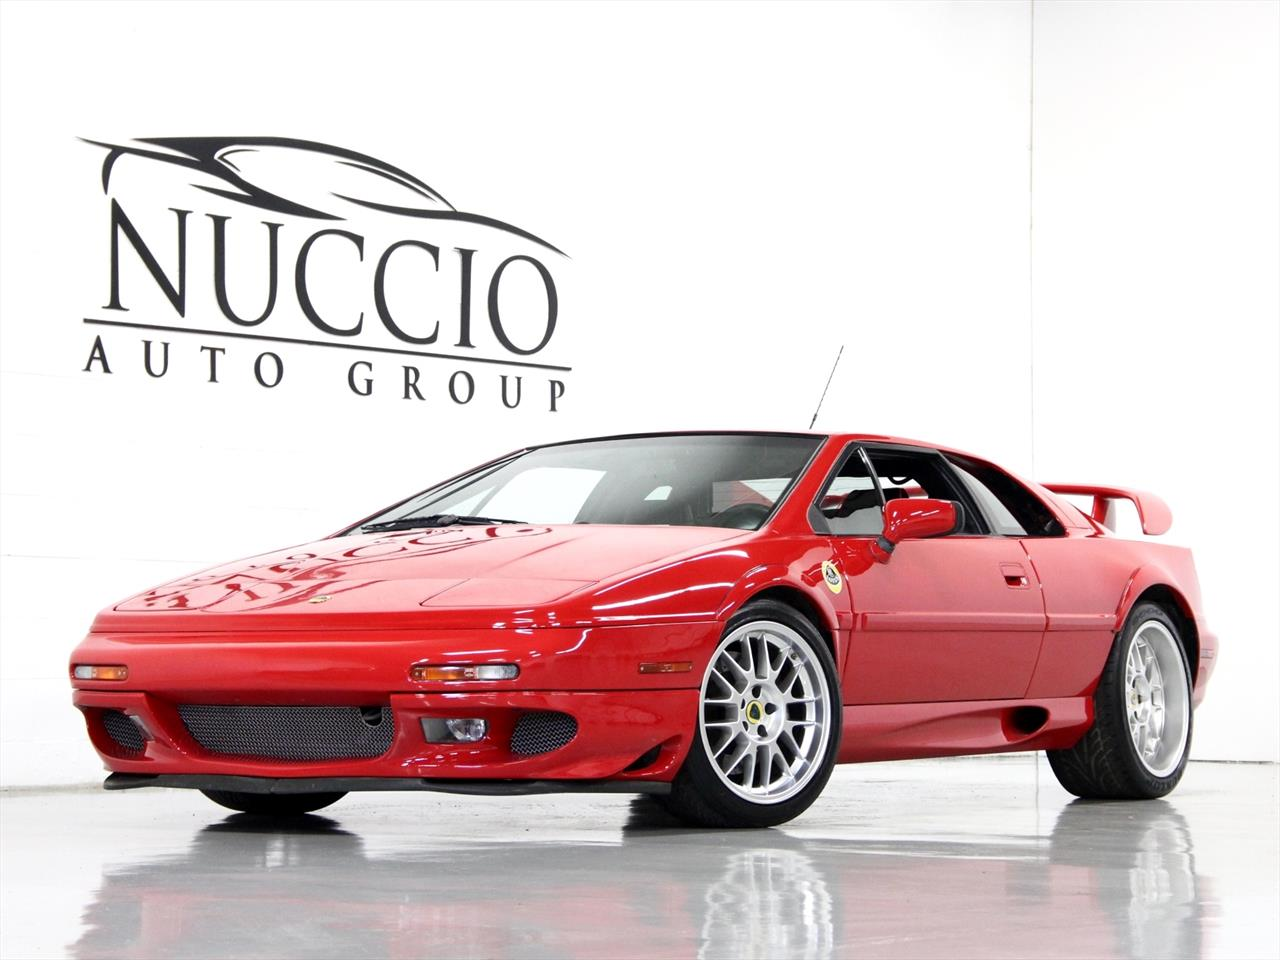 2004 Lotus Esprit V8 Final Edition